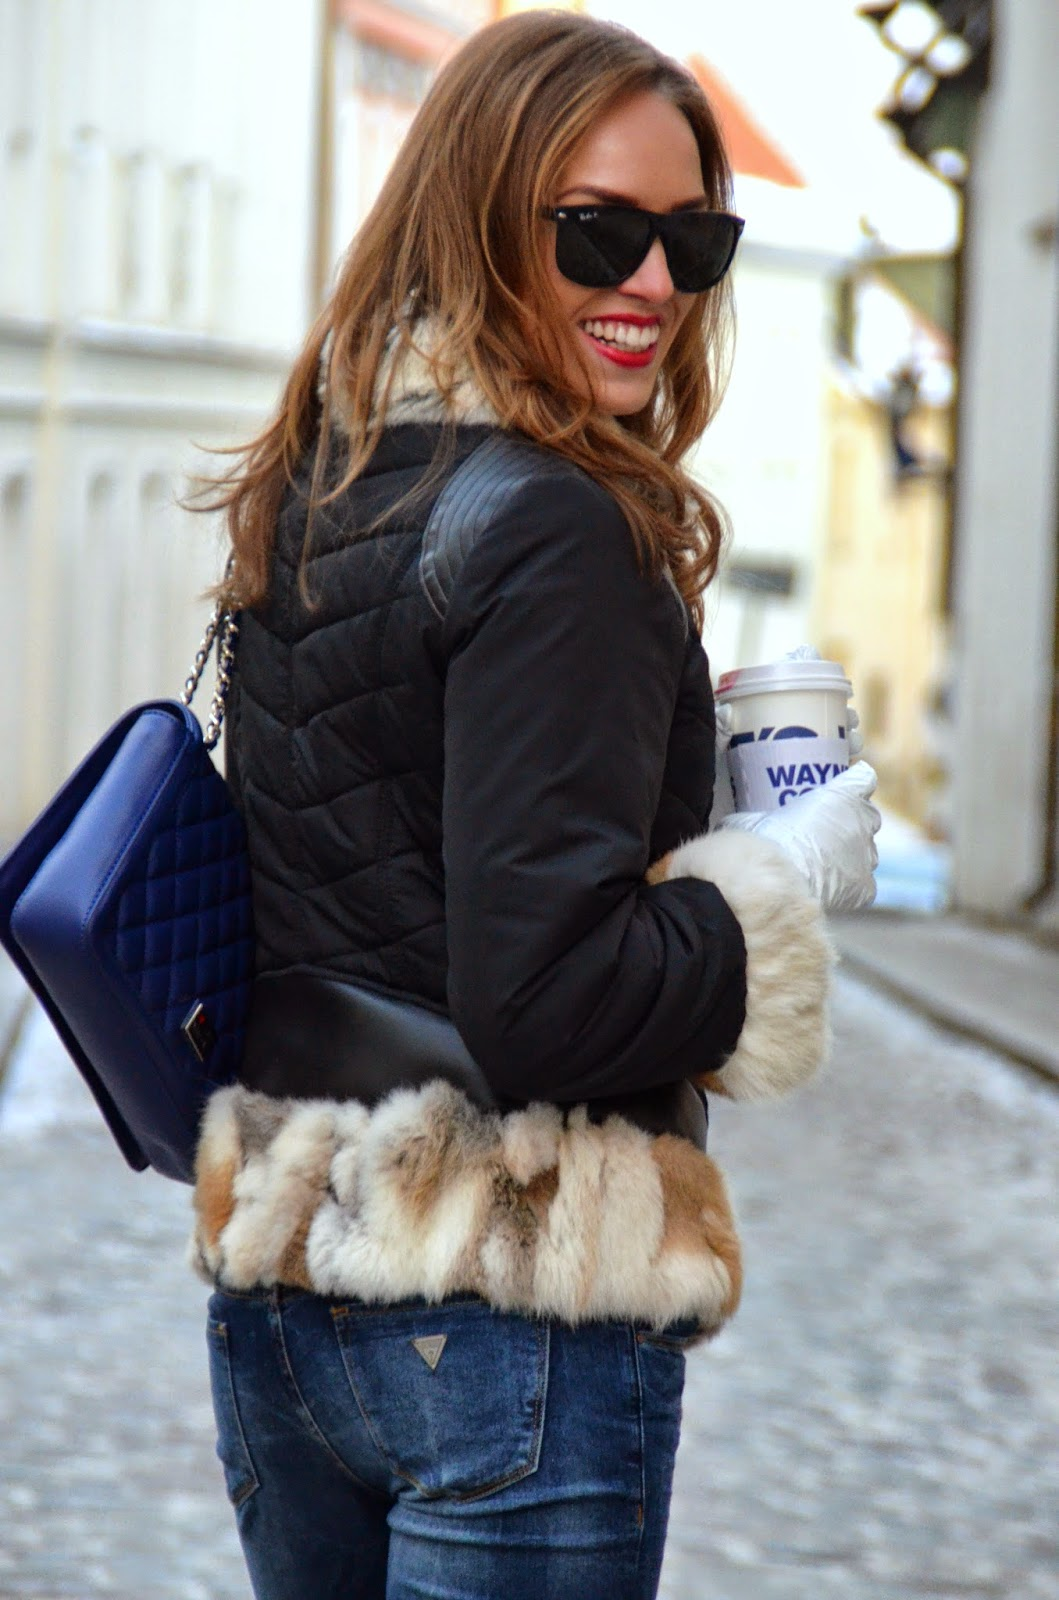 guess-jeans-rino-pelle-fur-coat-outfit